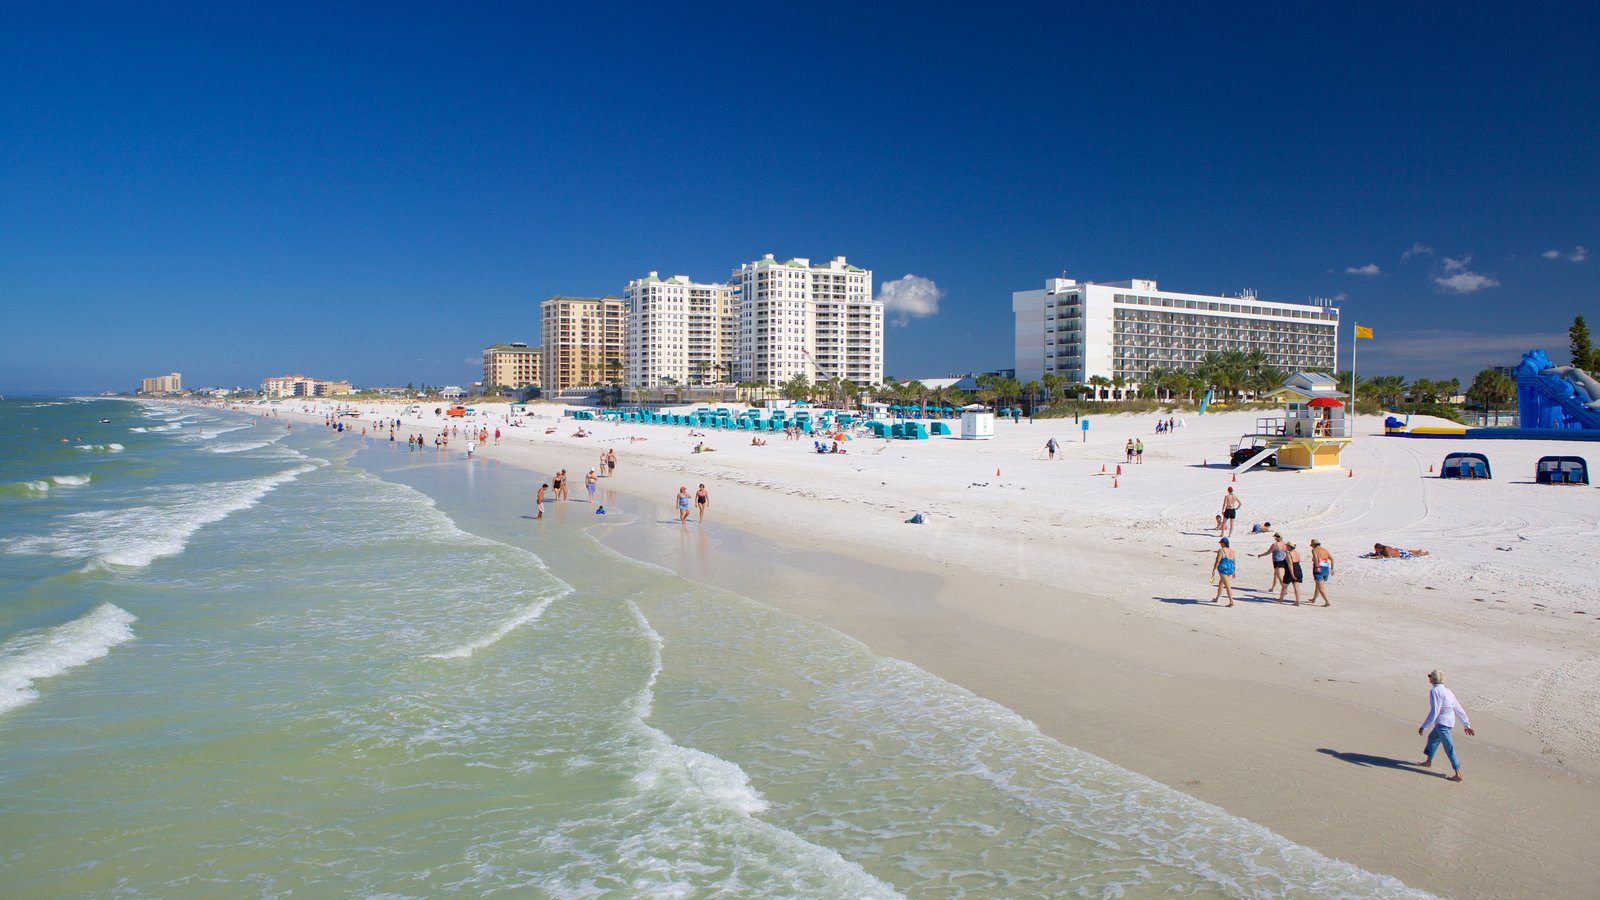 Clearwater Beach showing a coastal town and a sandy beach